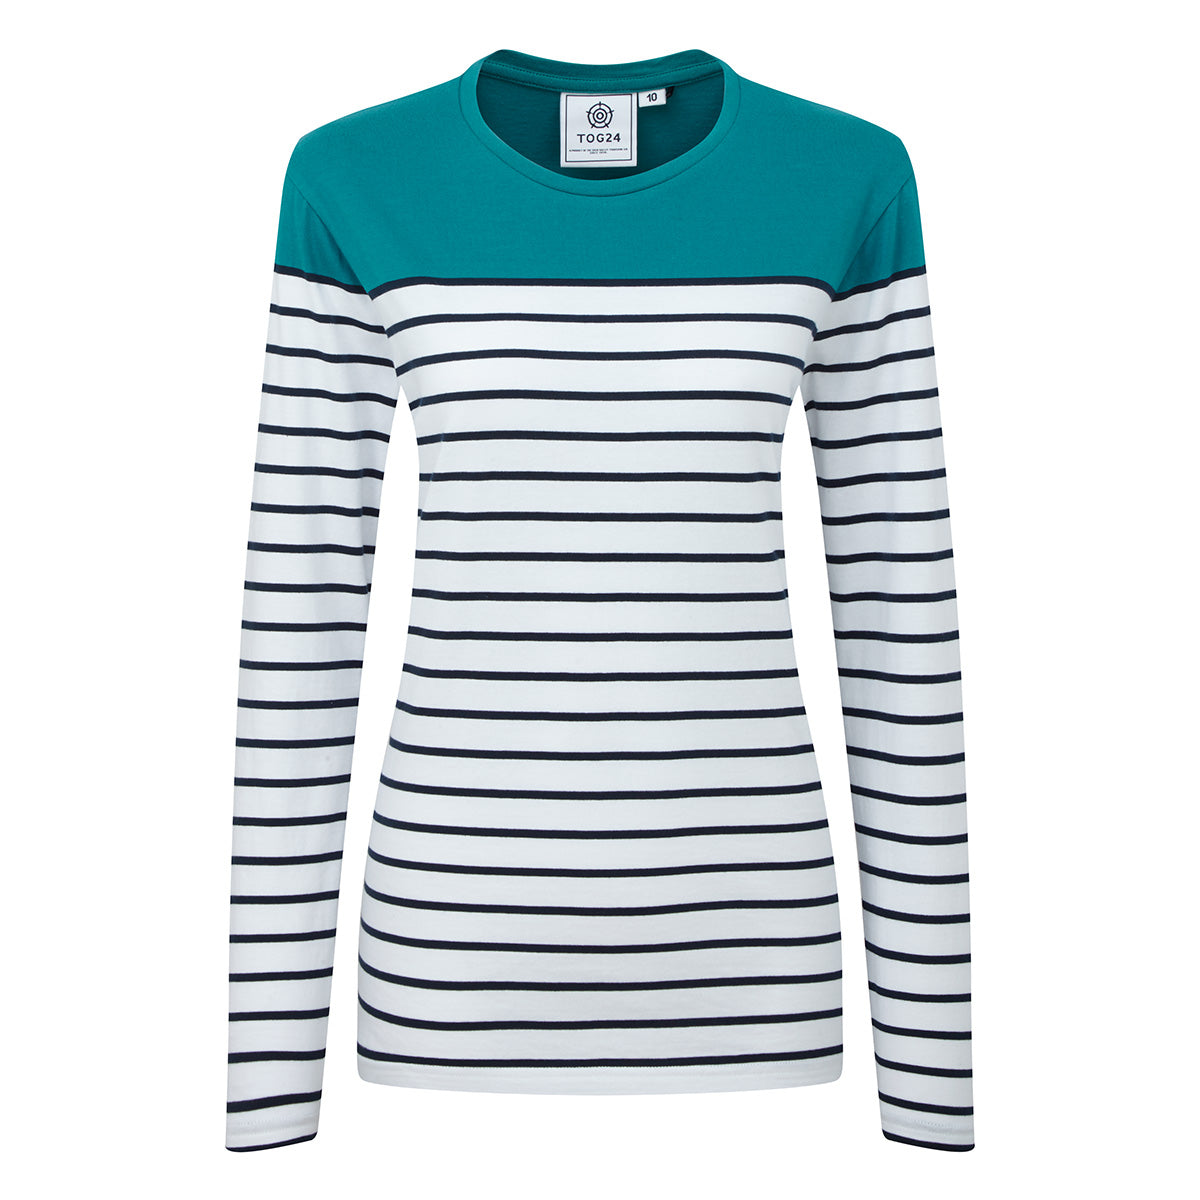 Braythorn Womens Long Sleeve Stripe T-Shirt - Topaz image 4